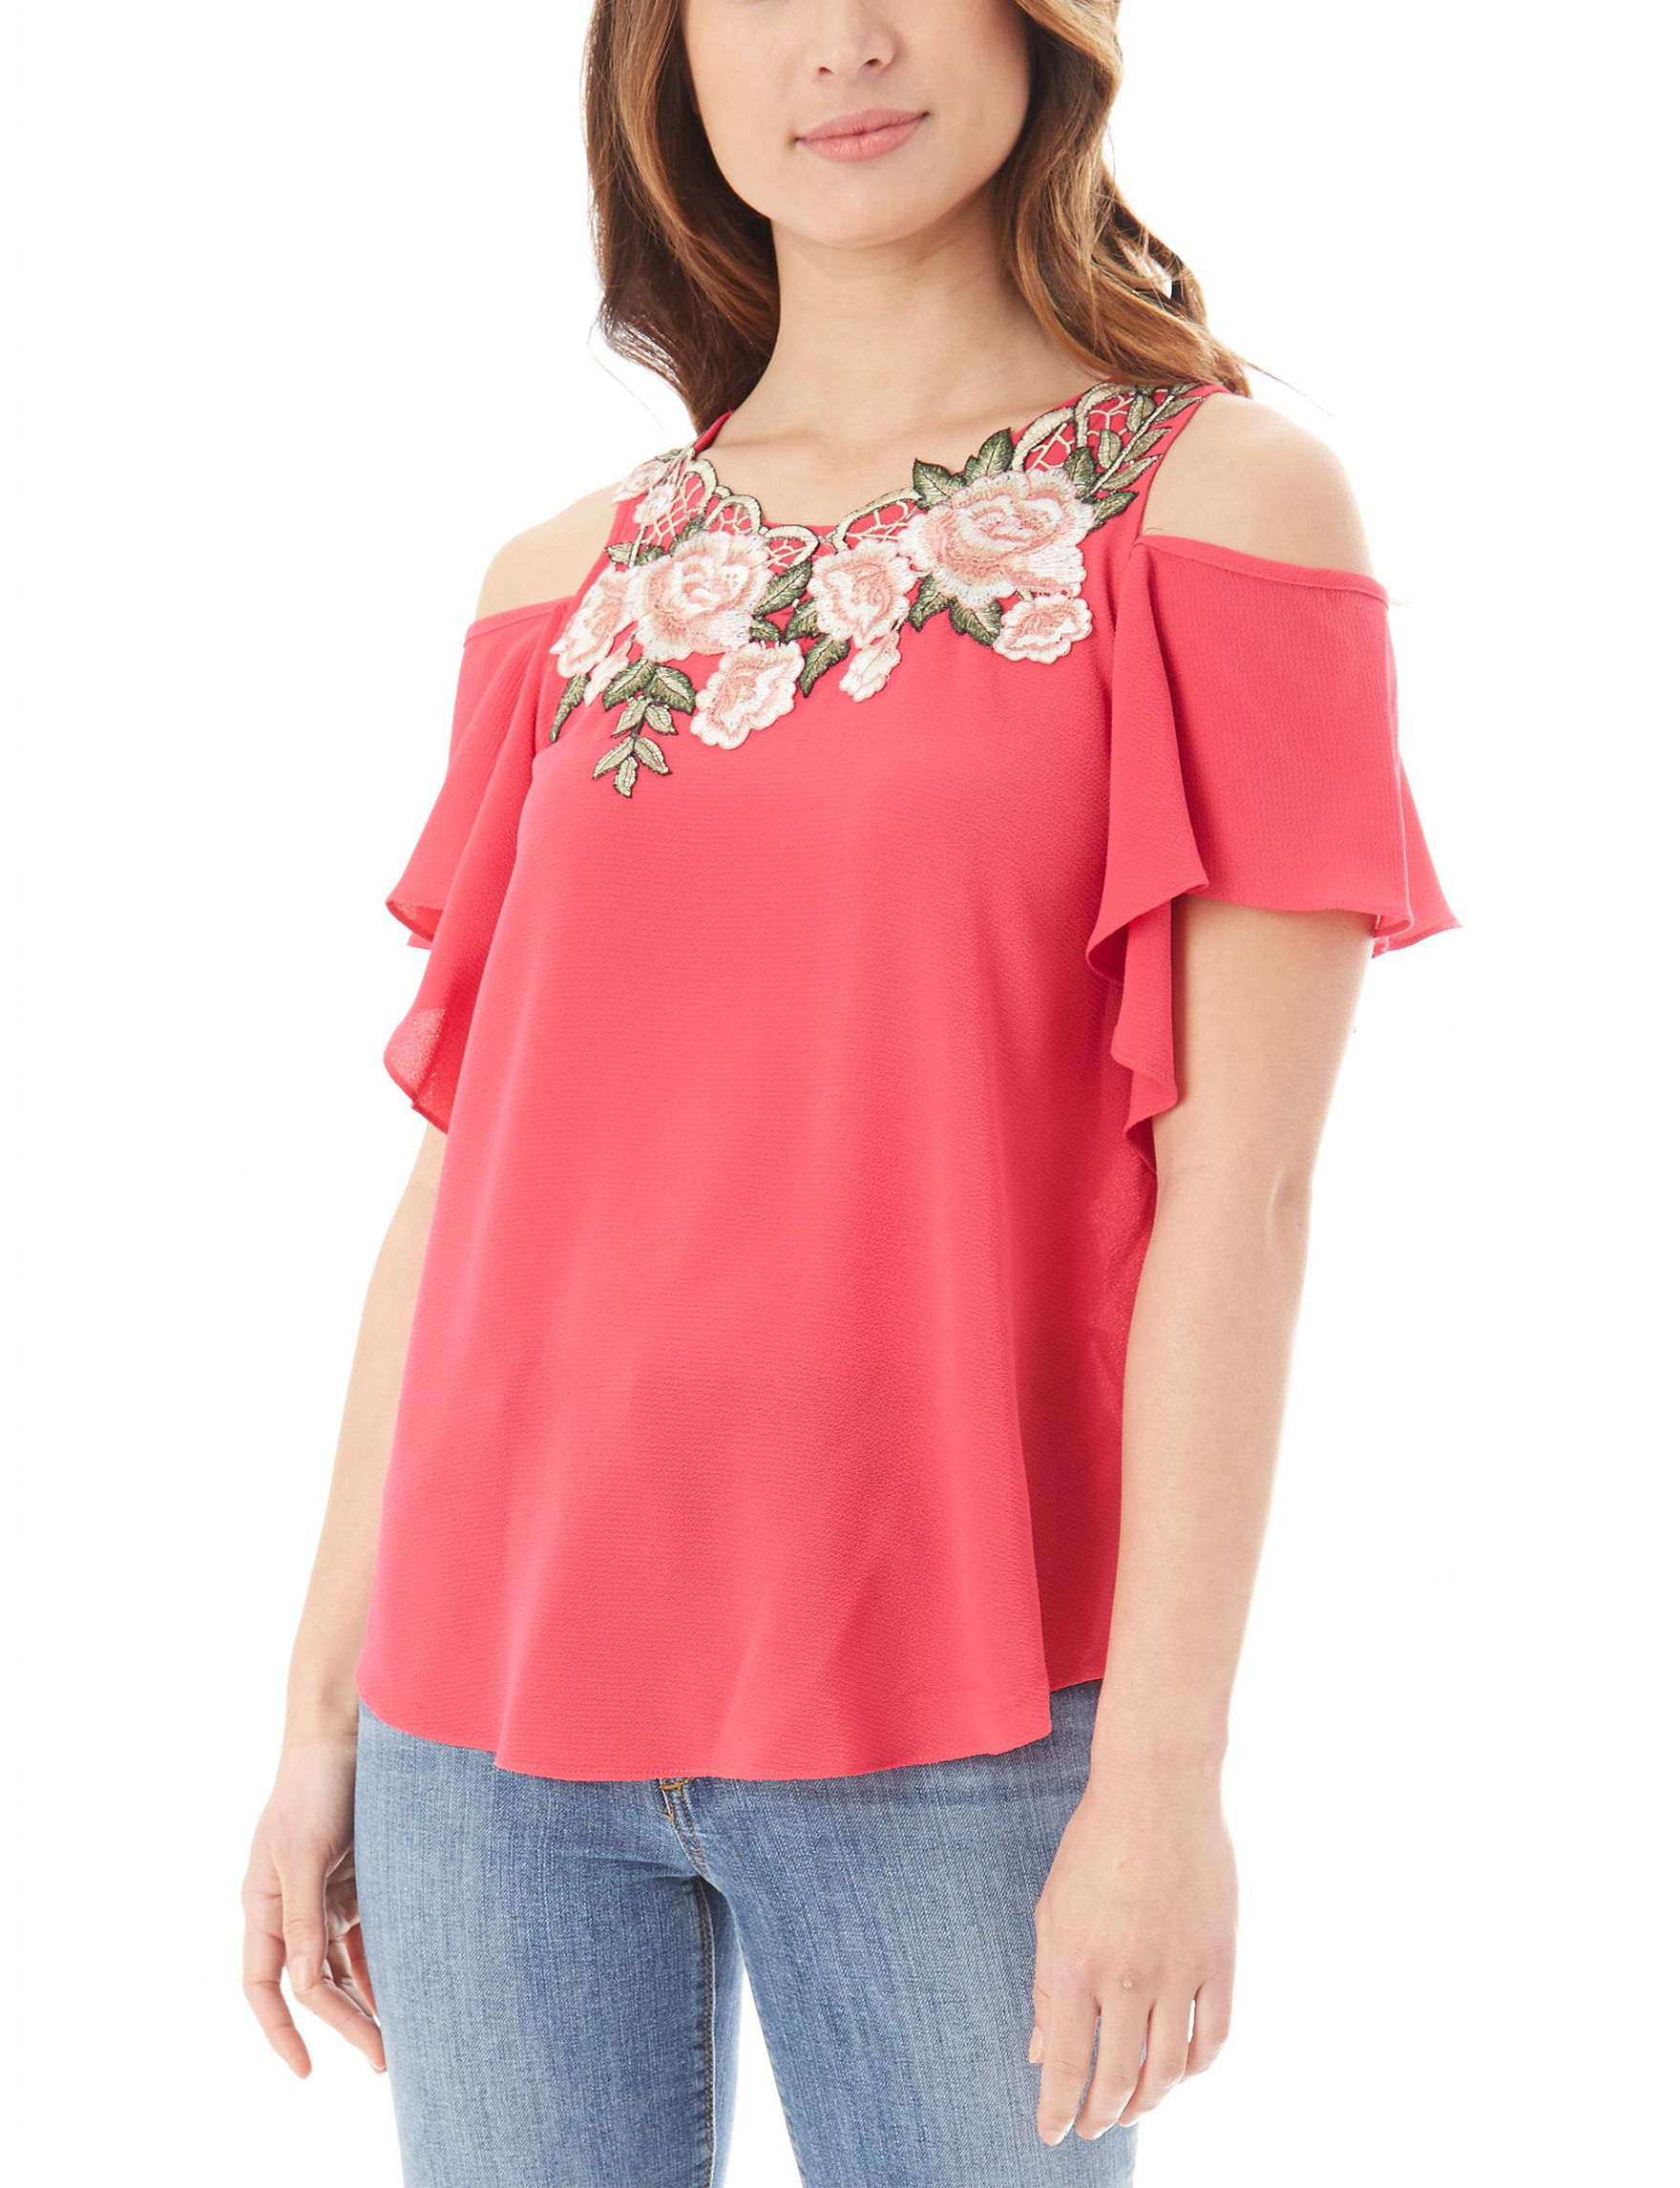 A. Byer Hot Pink Shirts & Blouses